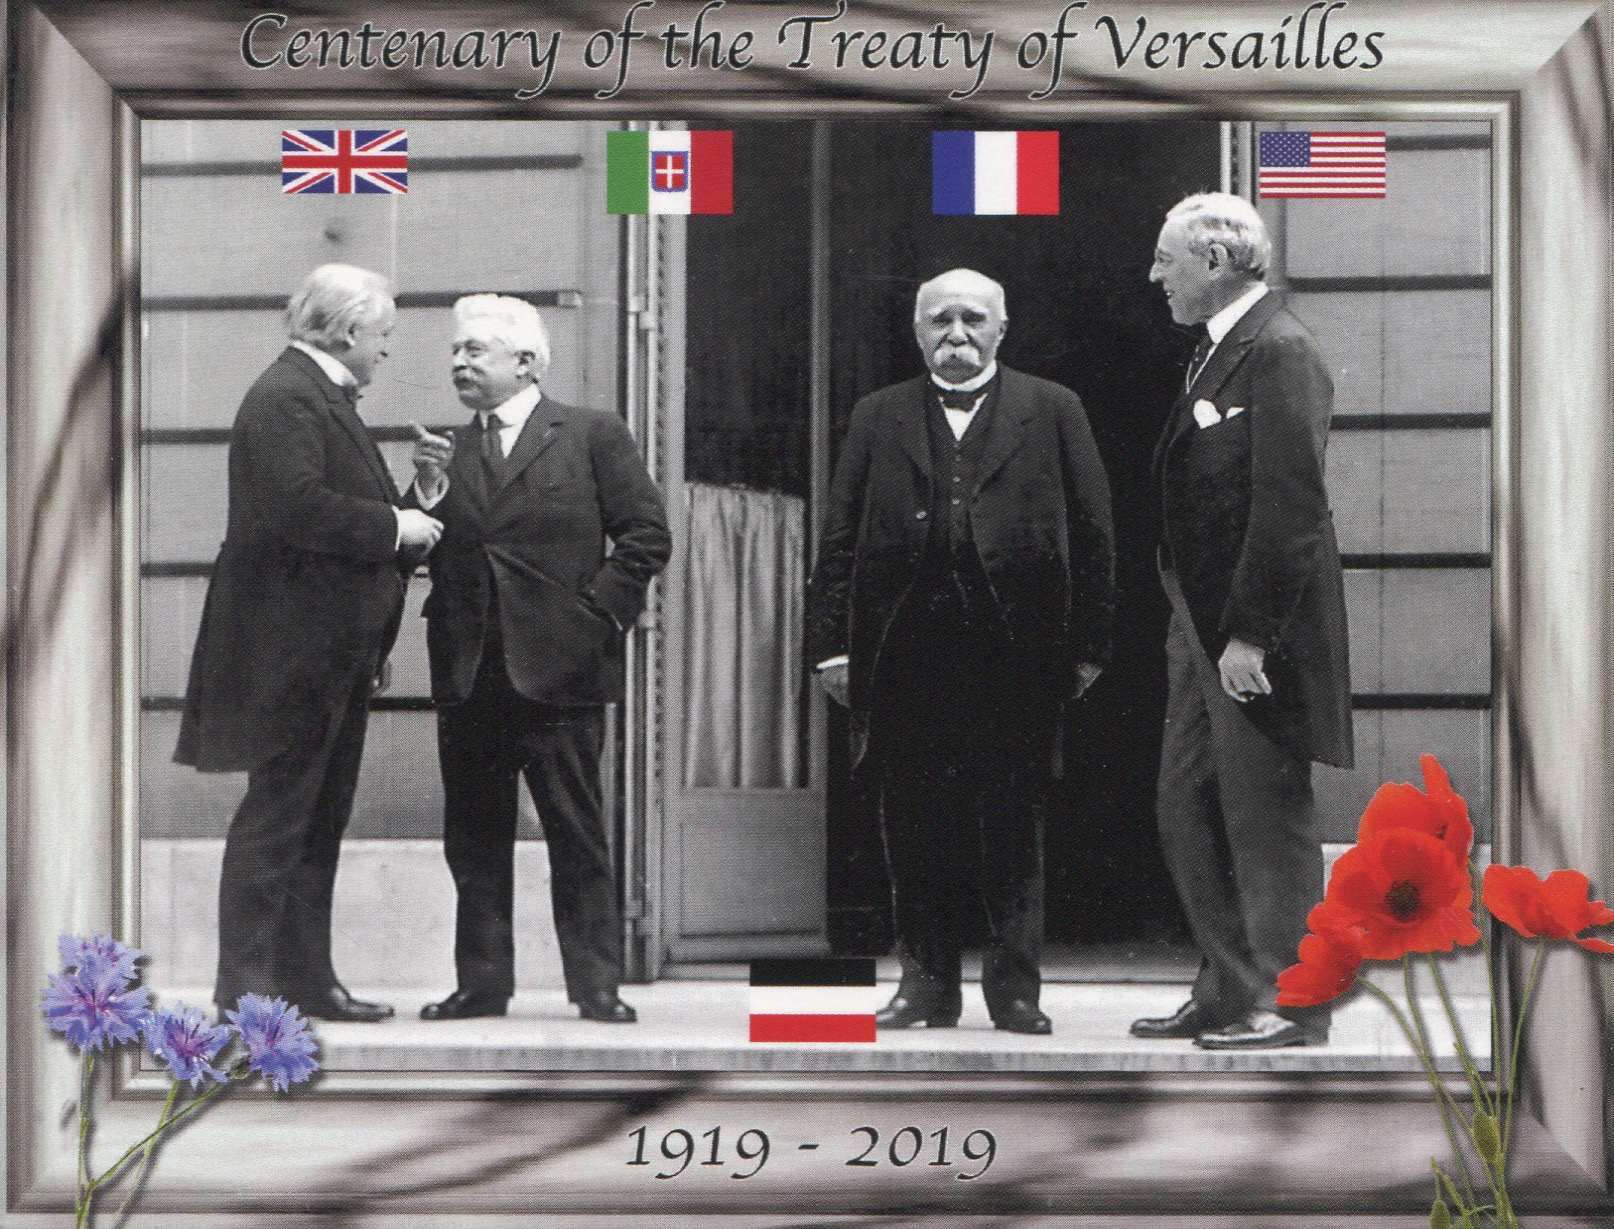 Centenary of the Treaty of Versailles (1) - WWI